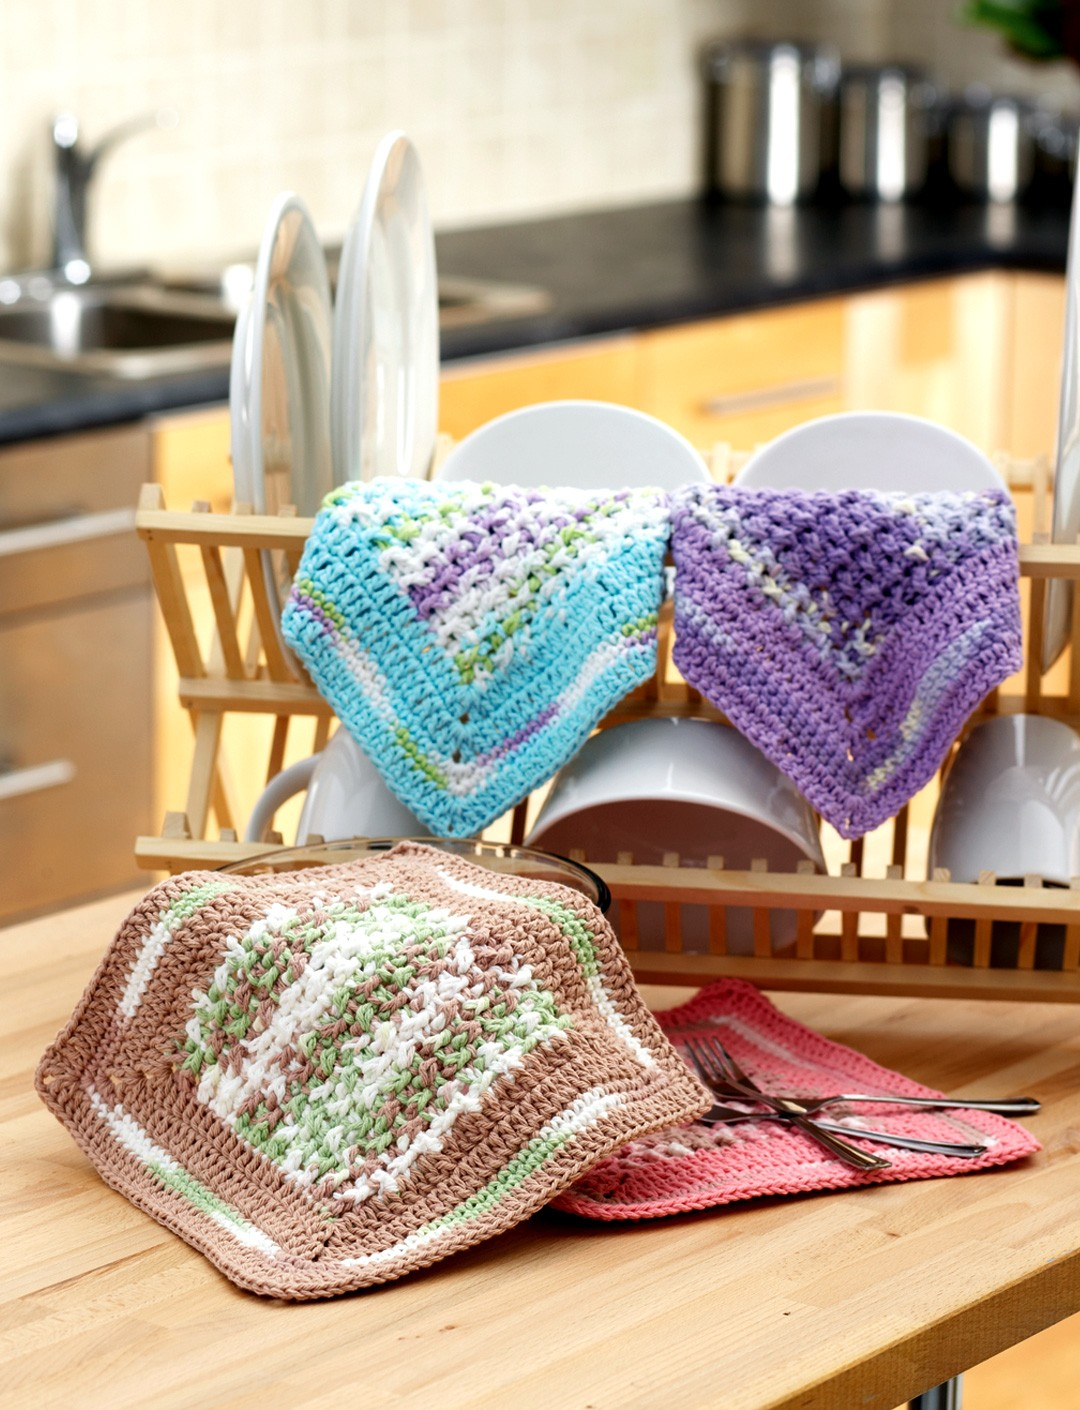 Spring Dreams Dishcloth